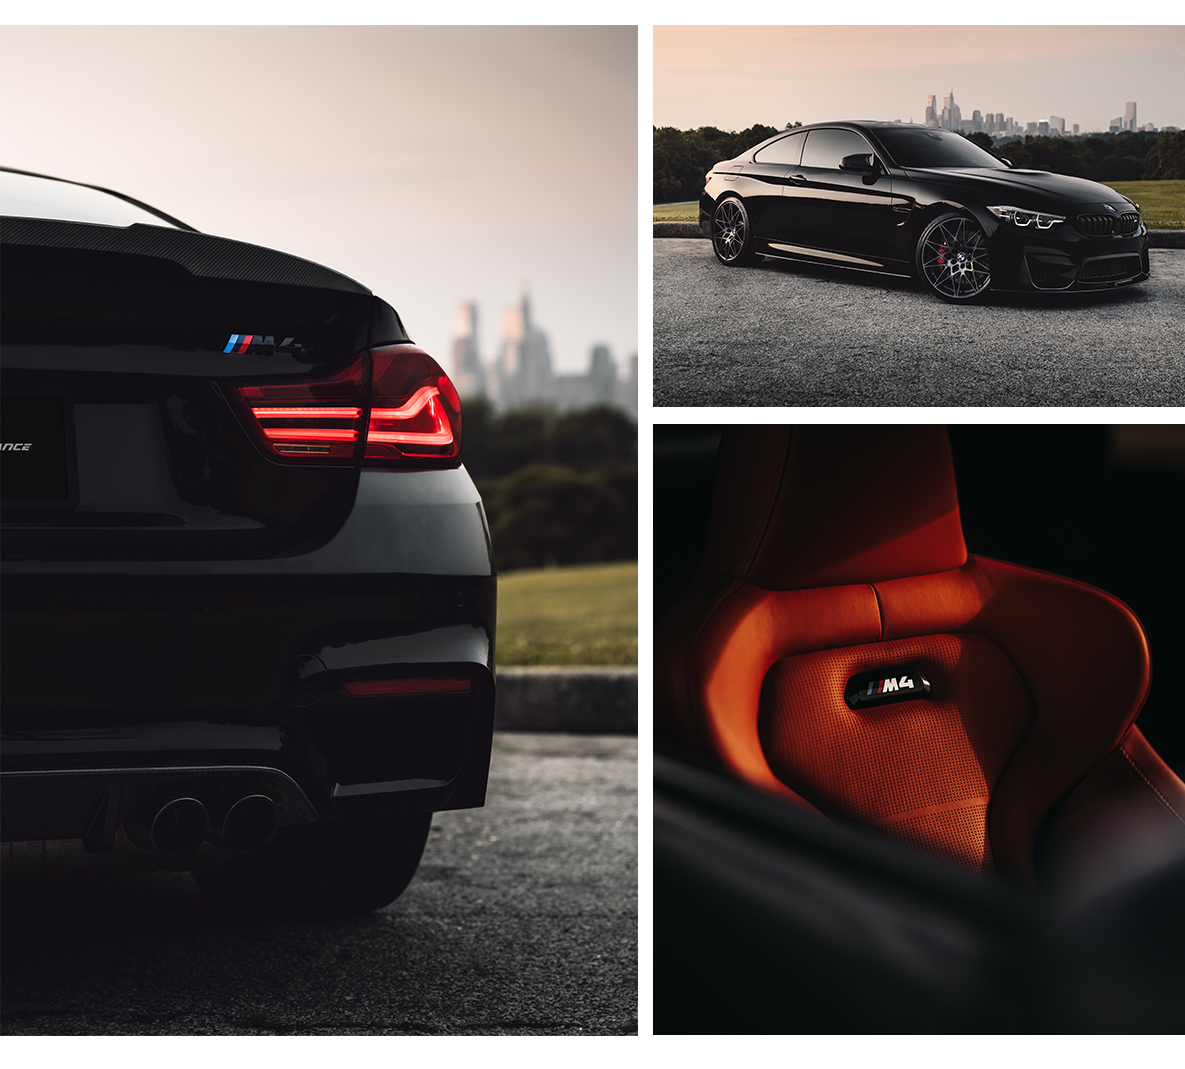 BMW M4 Coupé from shadow_m4